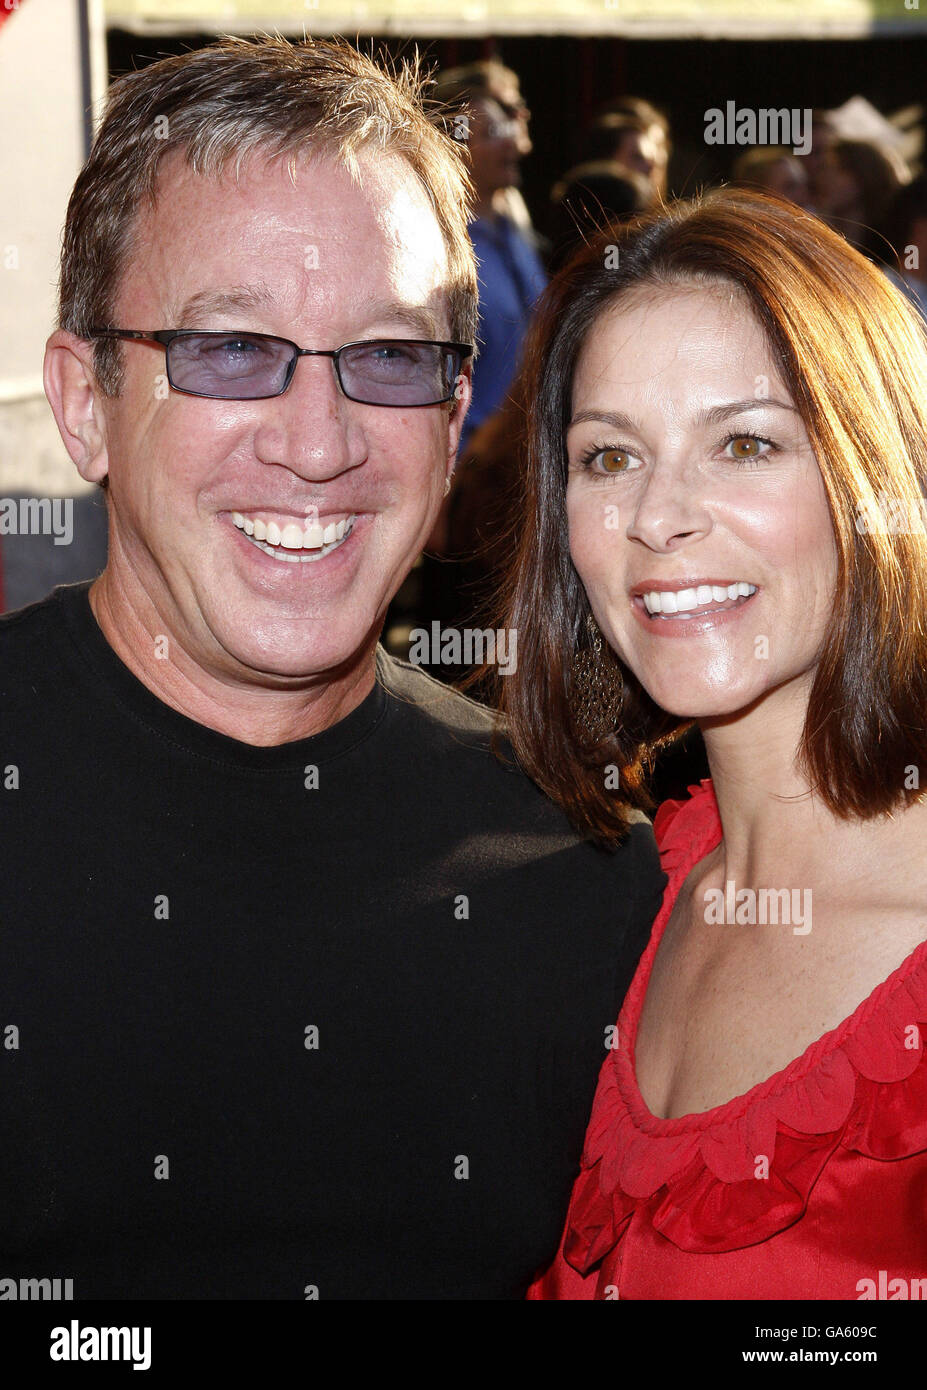 Tim Allen and Jane Allen at the World Premiere of 'Swing Vote' held at the El Capitan Theater in Hollywood, - Stock Image